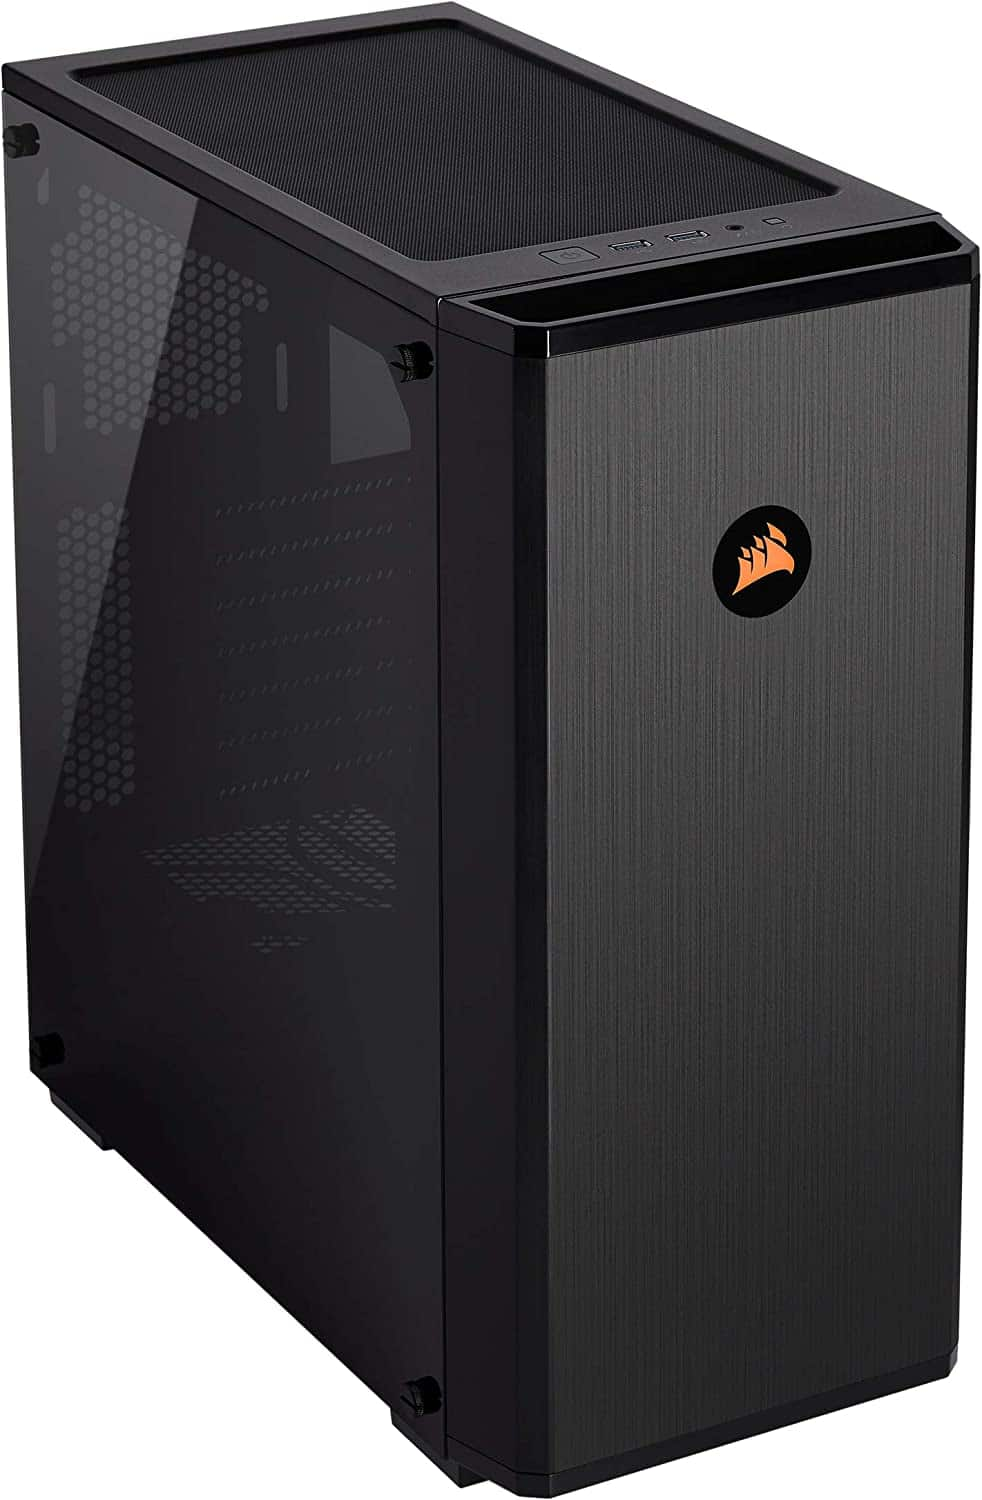 Corsair Carbide Series 175R RGB Tempered Glass Mid-Tower ATX Gaming Case, Black $59.99